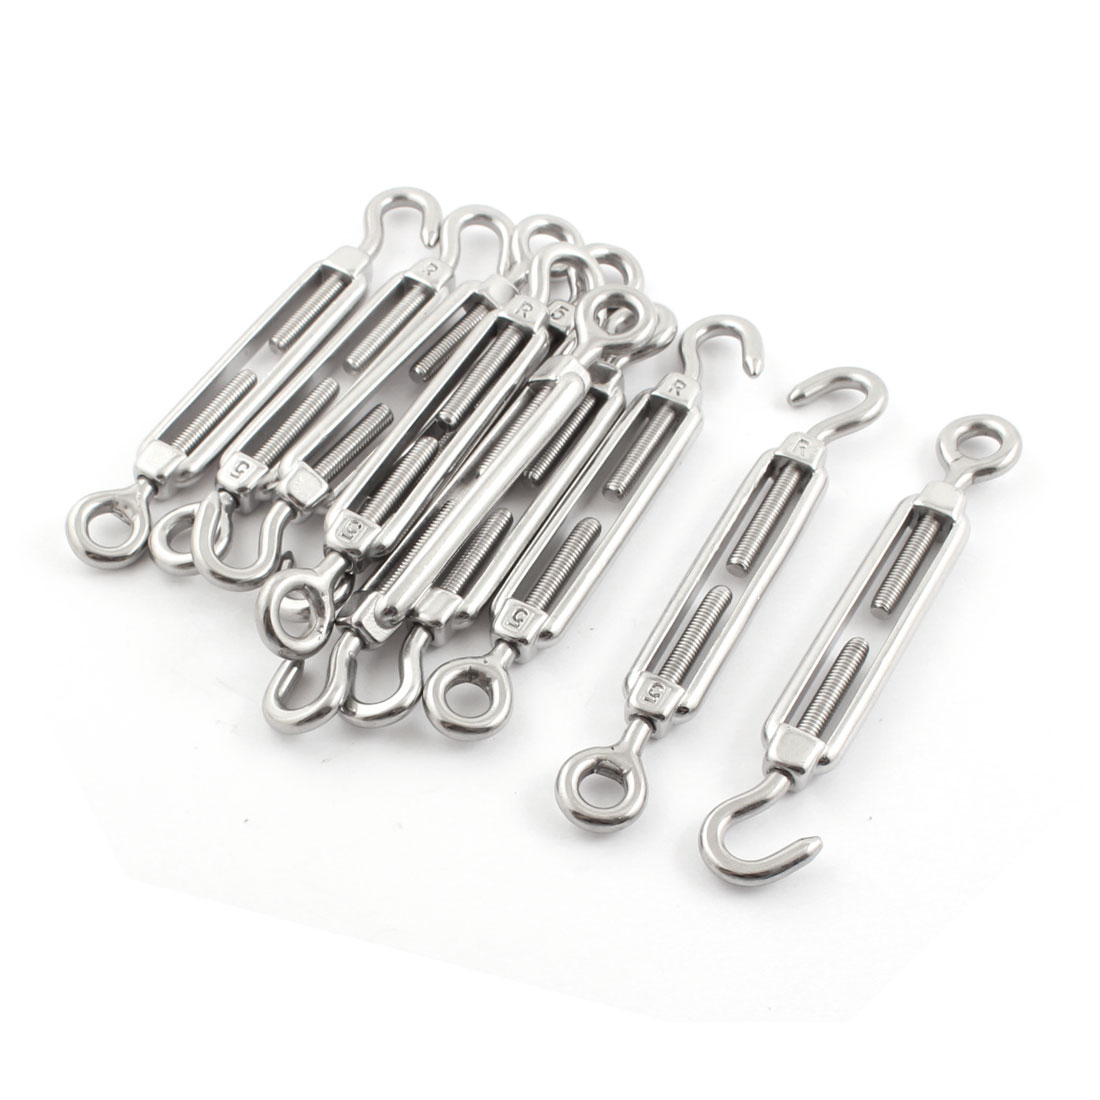 10PCS Silver Tone Stainless Steel Hook Eye Turnbuckle for 5mm 1/5 Inch Wire Rope